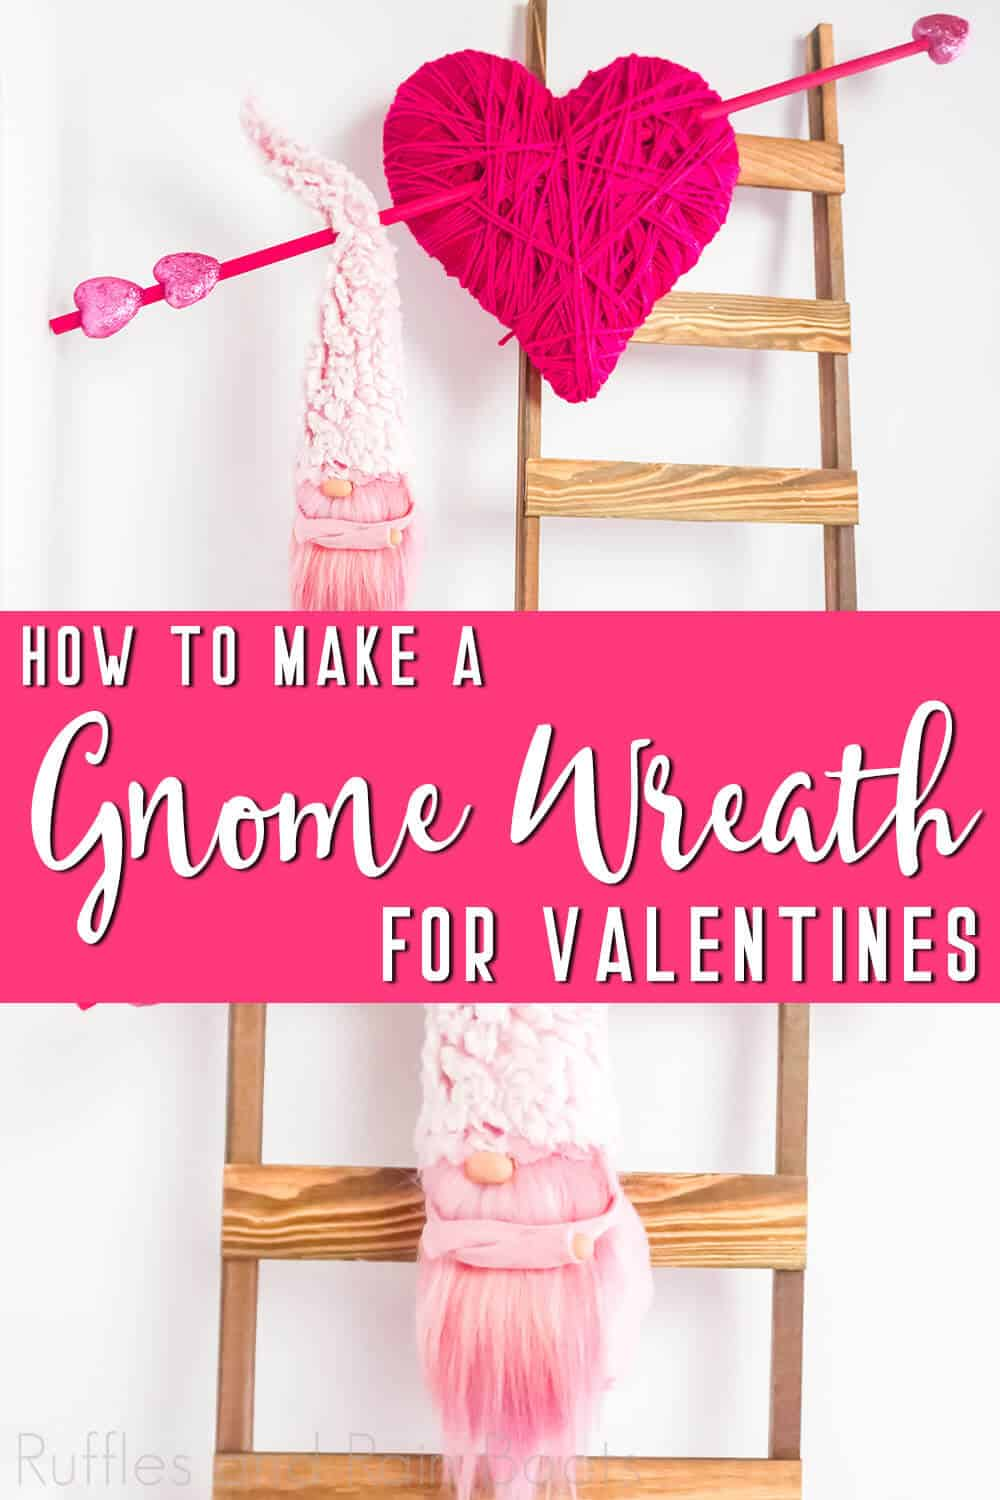 photo collage of a gnome pattern with a valentines wreath with text which reads how to make a gnome wreath for valentines